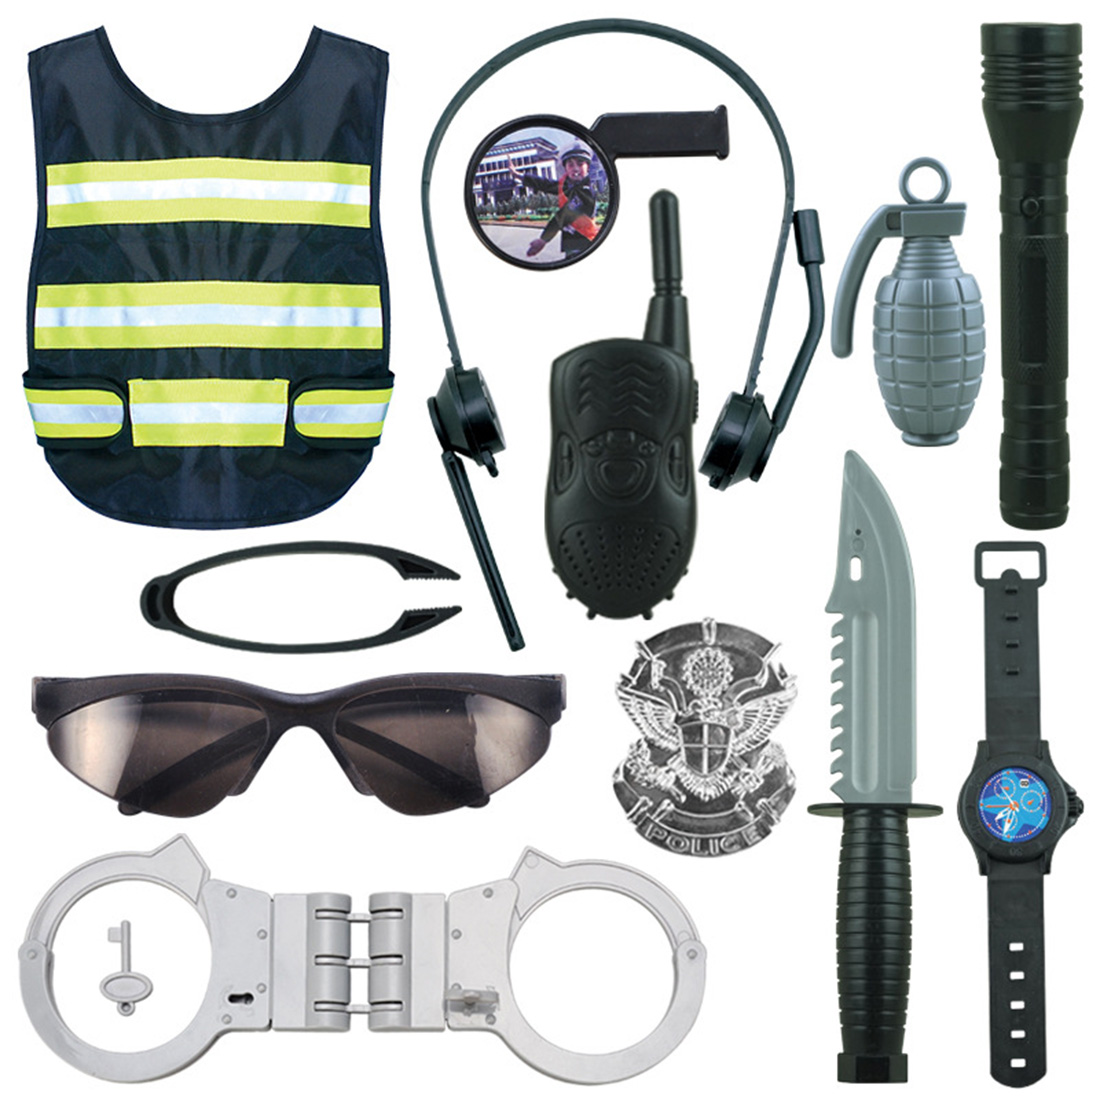 UTOYSLAND 12Pcs Children Role Play Police Costume Cop Dress-Up Clothes Playset Kids Pretend Play Walkie Talkie Handcuffs Set Toy